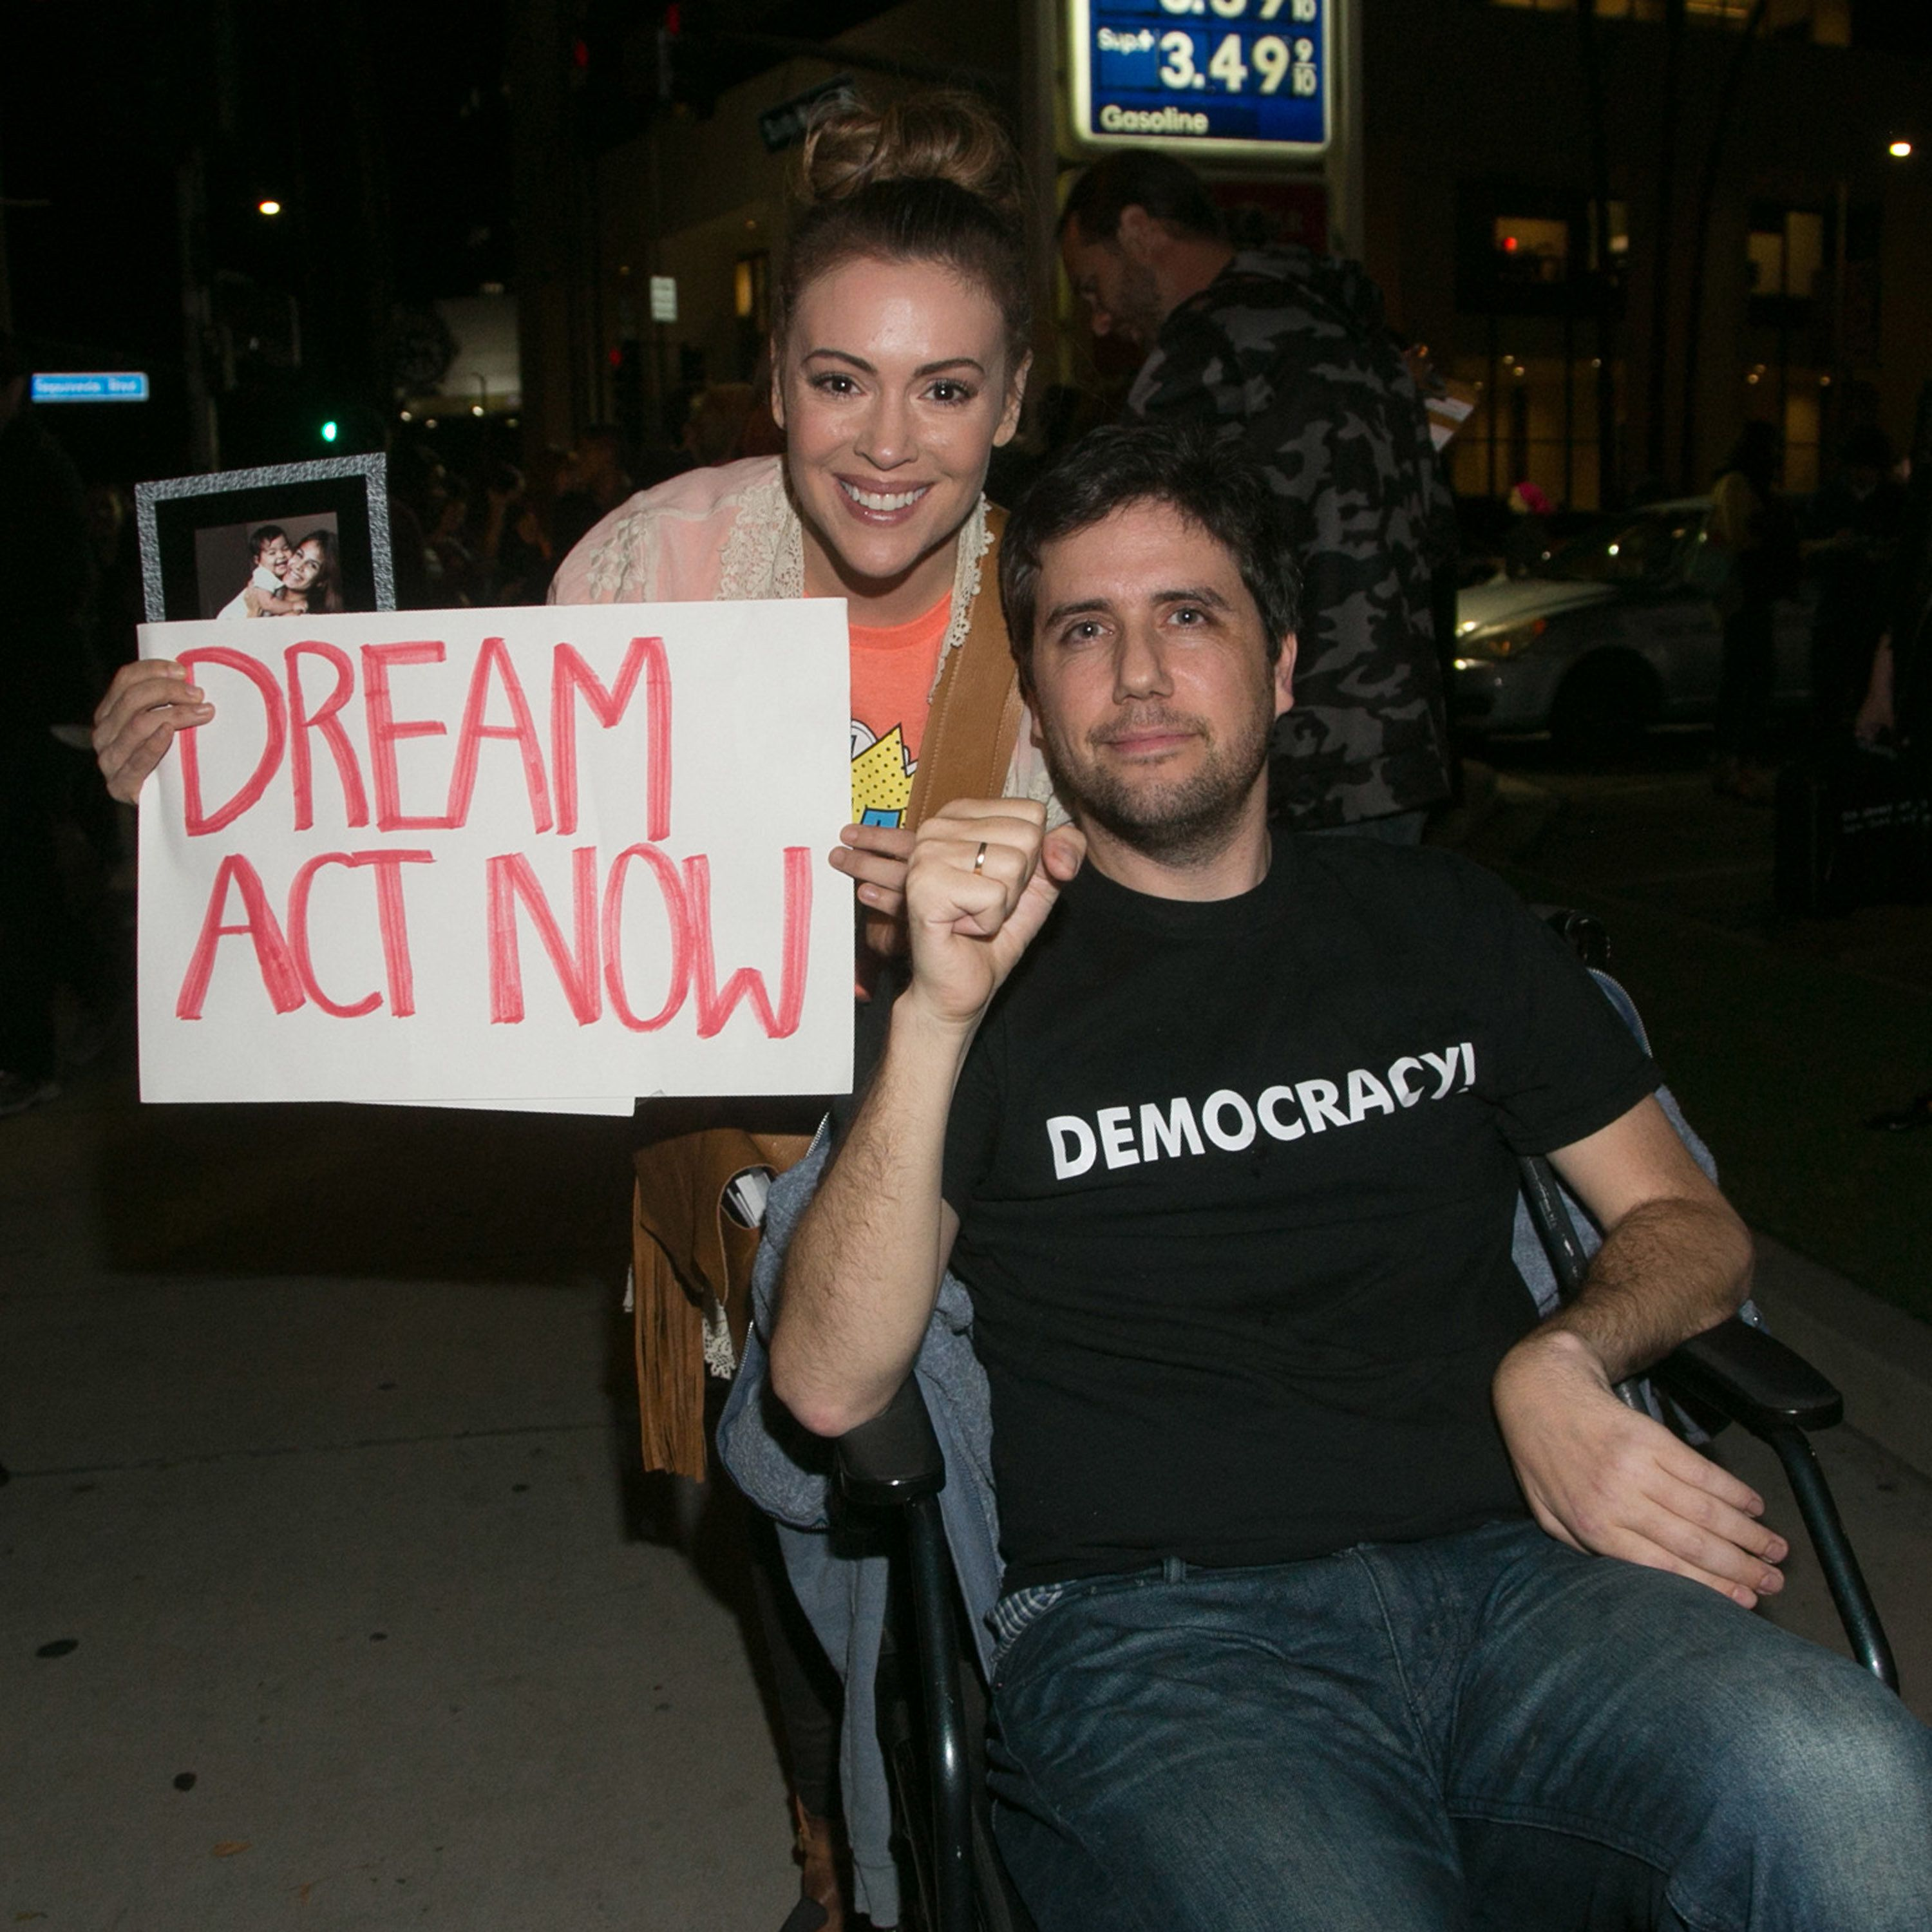 Ady Barkan, seated in a wheelchair, attends a rally for the Dream Act in Los Angeles in January 2018. Alyssa Milano, an actre